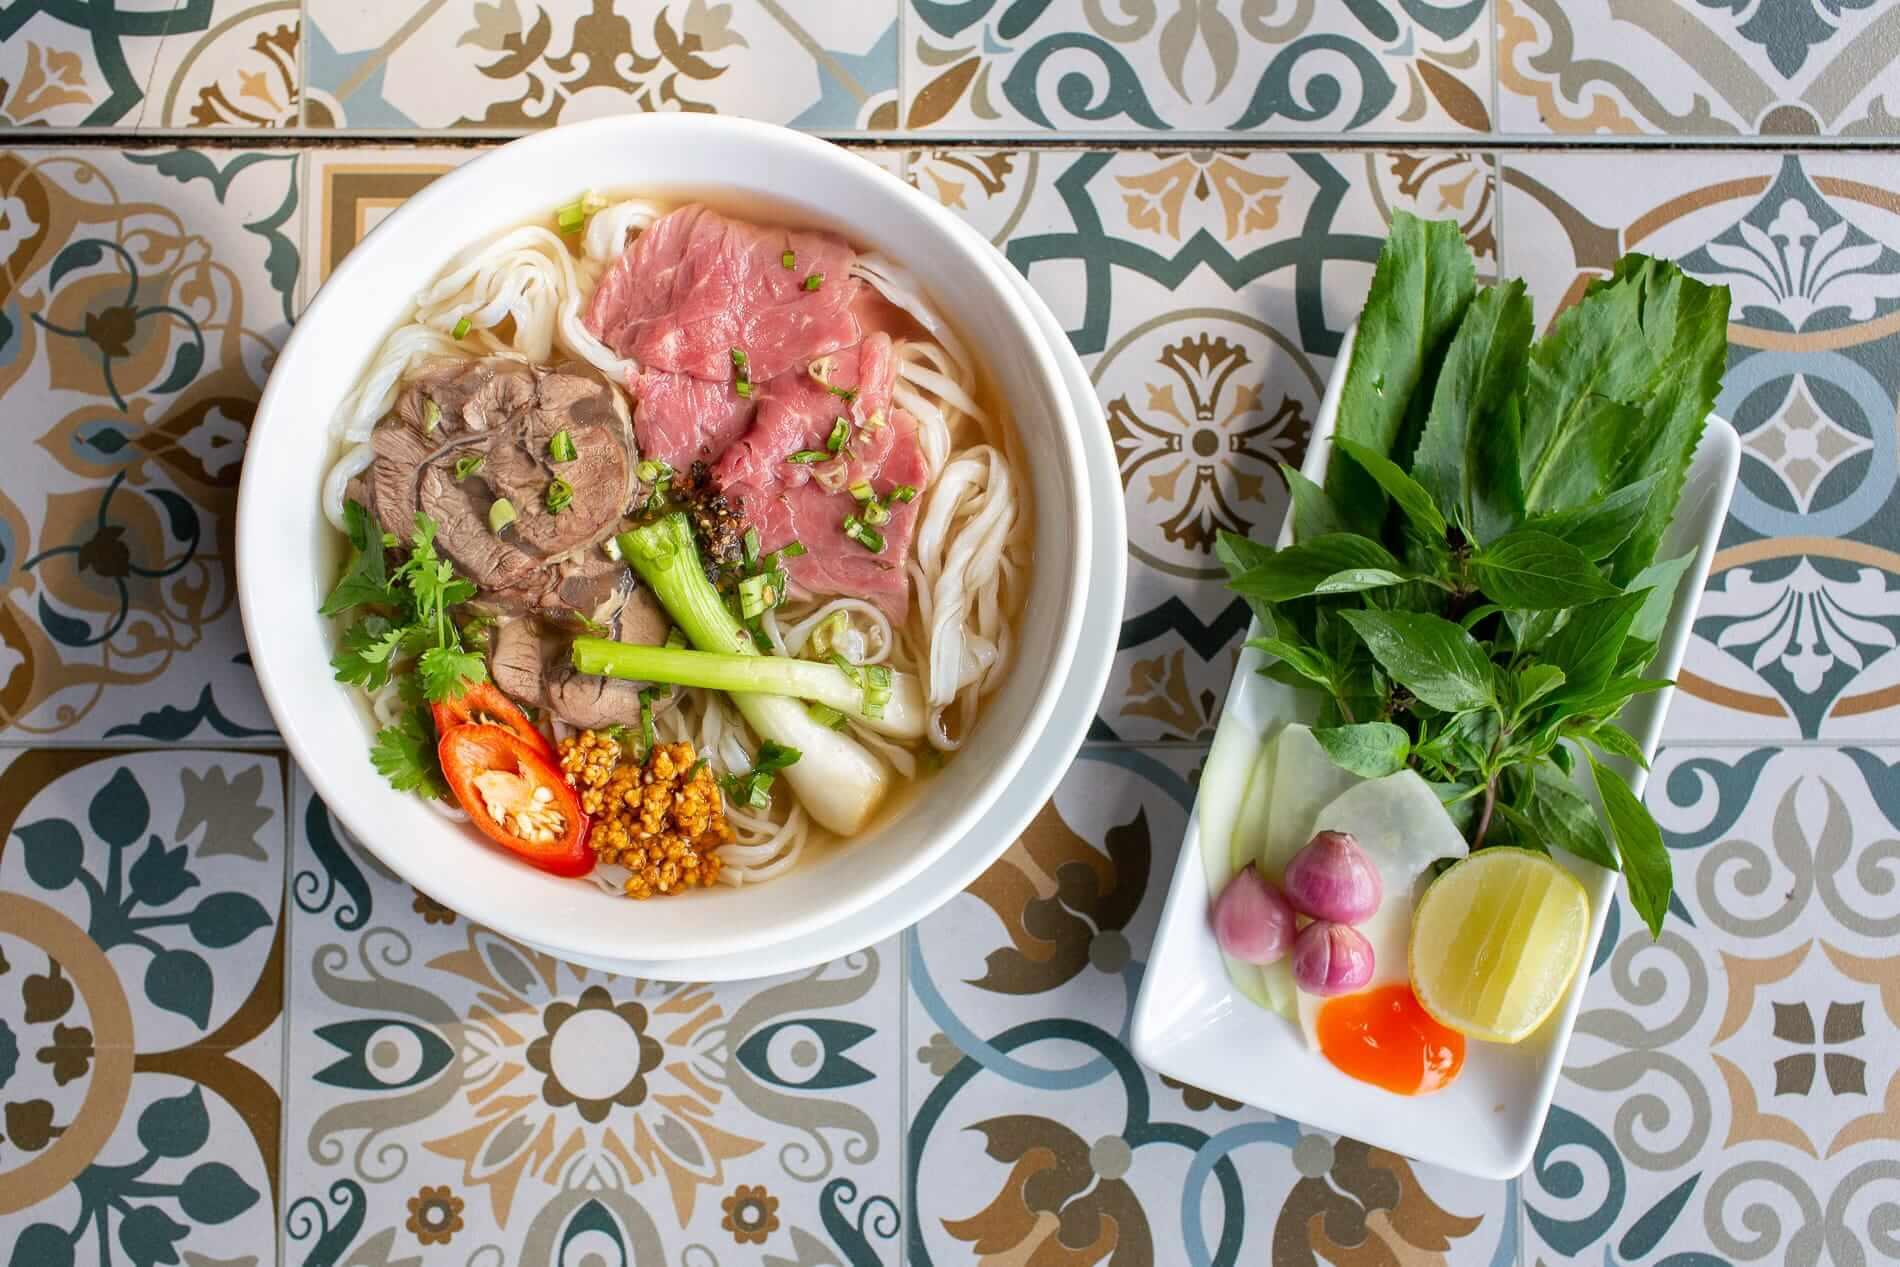 Beef Pho at Vy's Marketplace